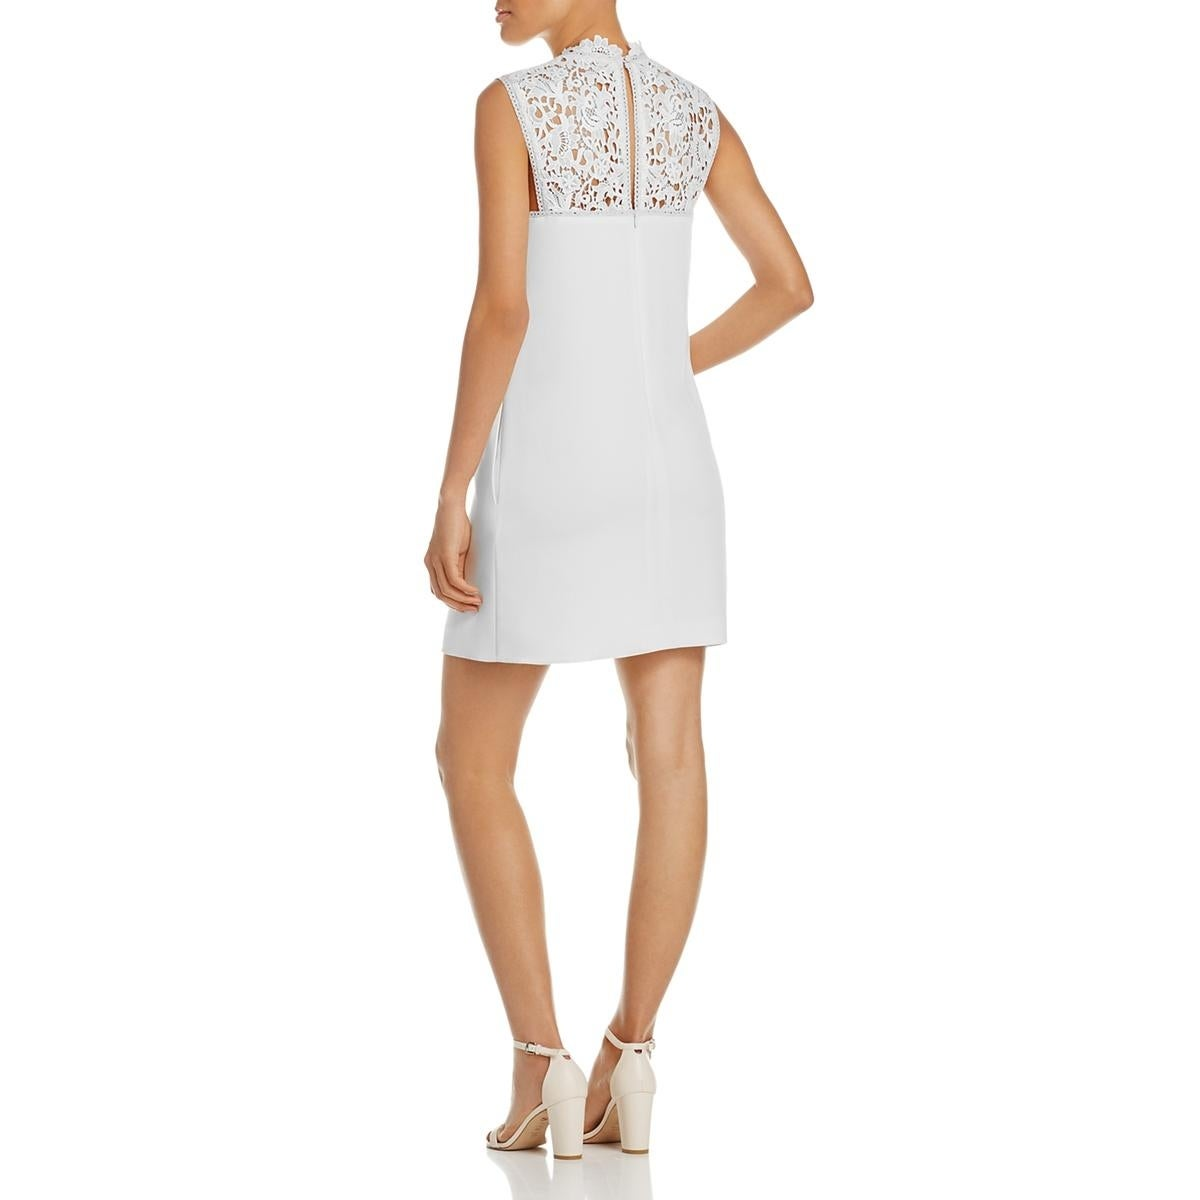 083c848fcd Shop Theory Womens Aronella Party Dress Lace Crepe - Free Shipping Today -  Overstock - 20813912